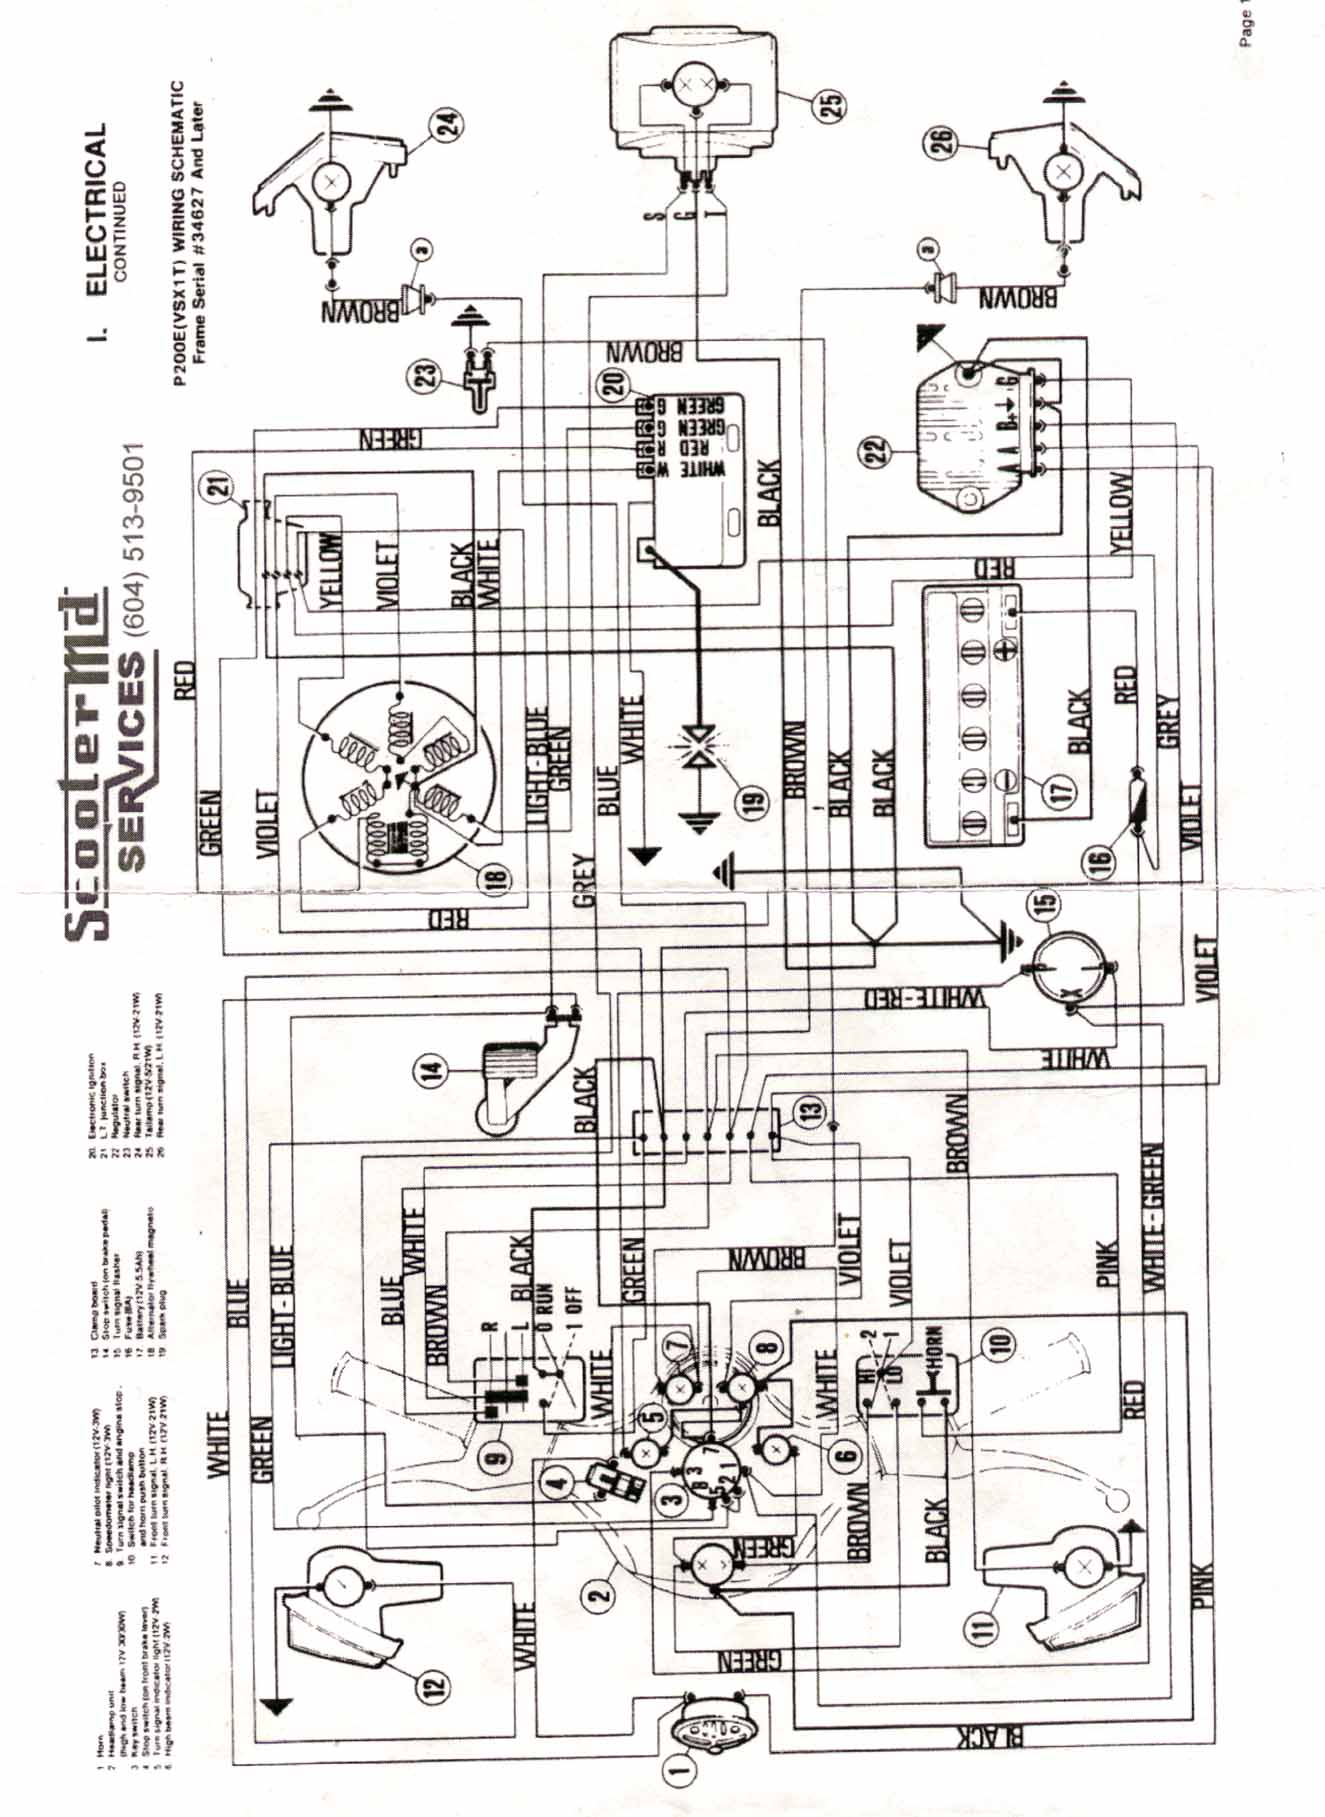 Dell Mouse Schematic